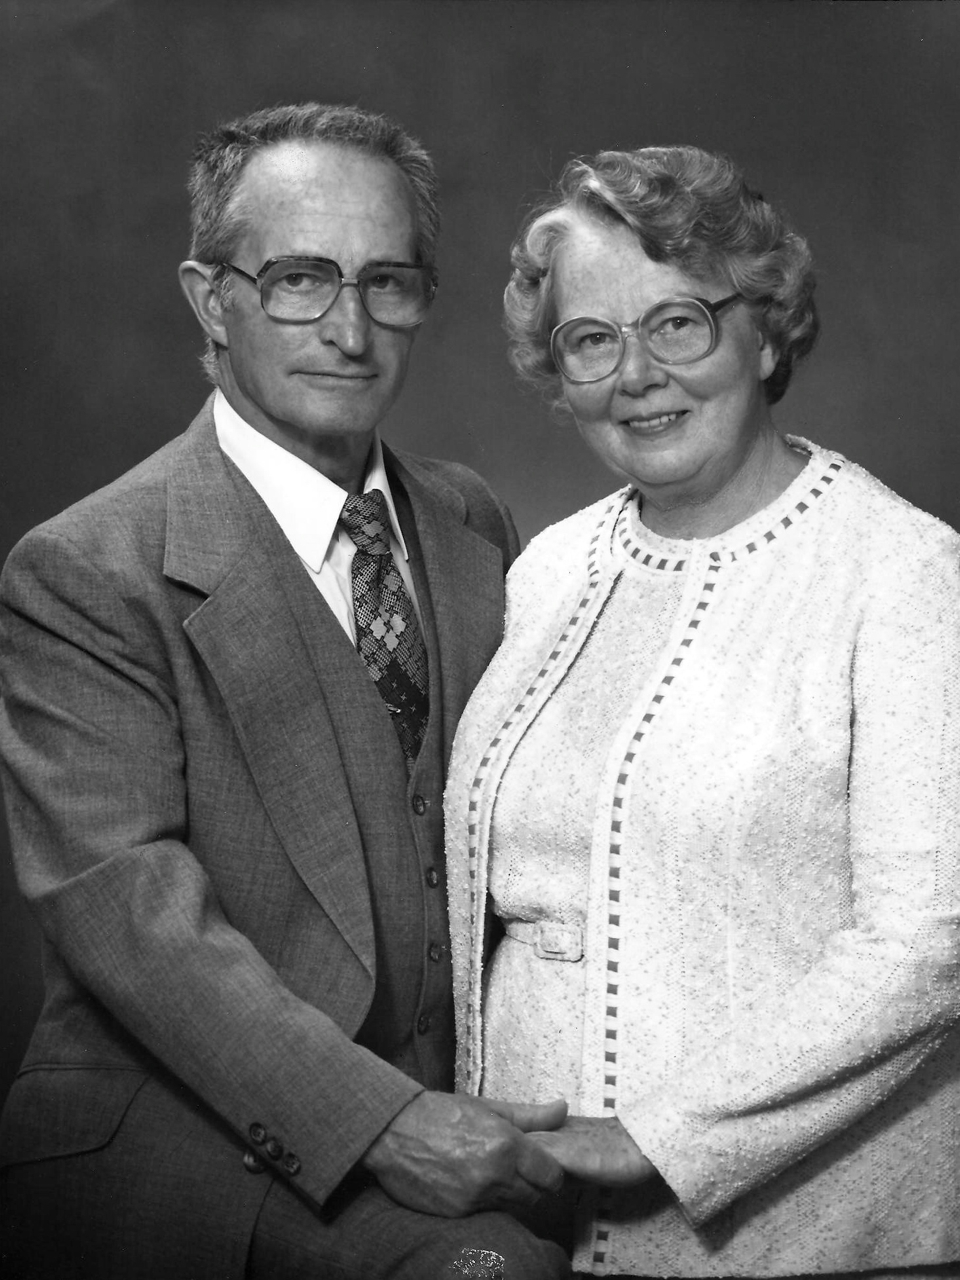 Dr. Bruce and Edith Murray